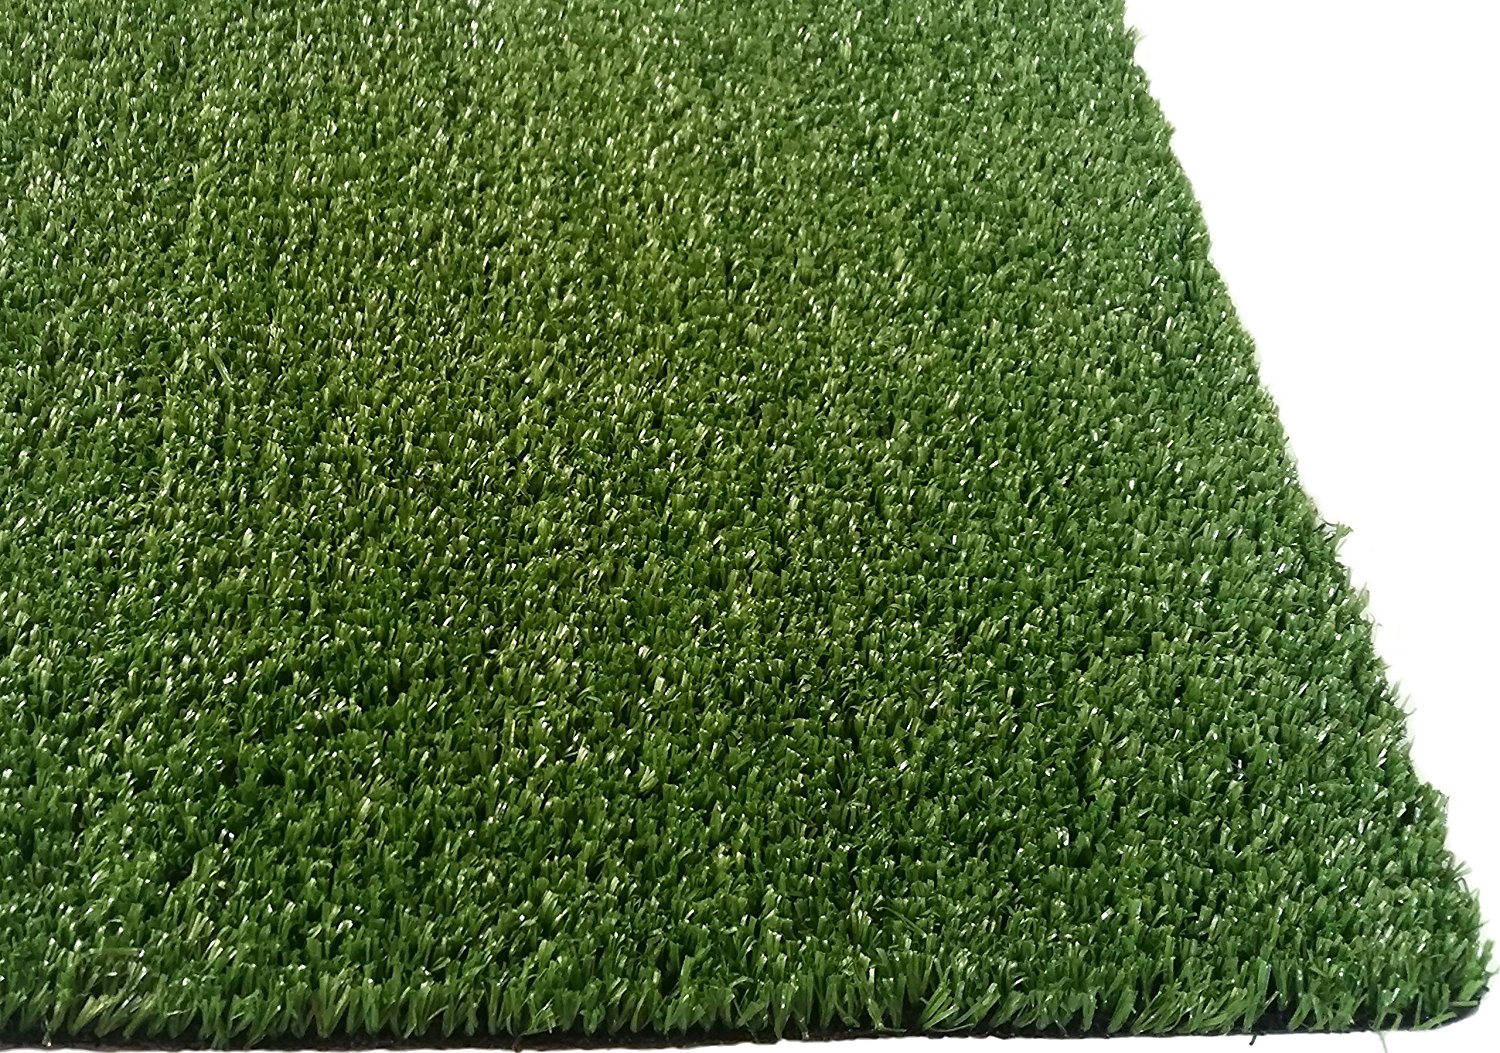 Artificial Grass Rug w/ Drainage Holes & Rubber Backing | Amazon